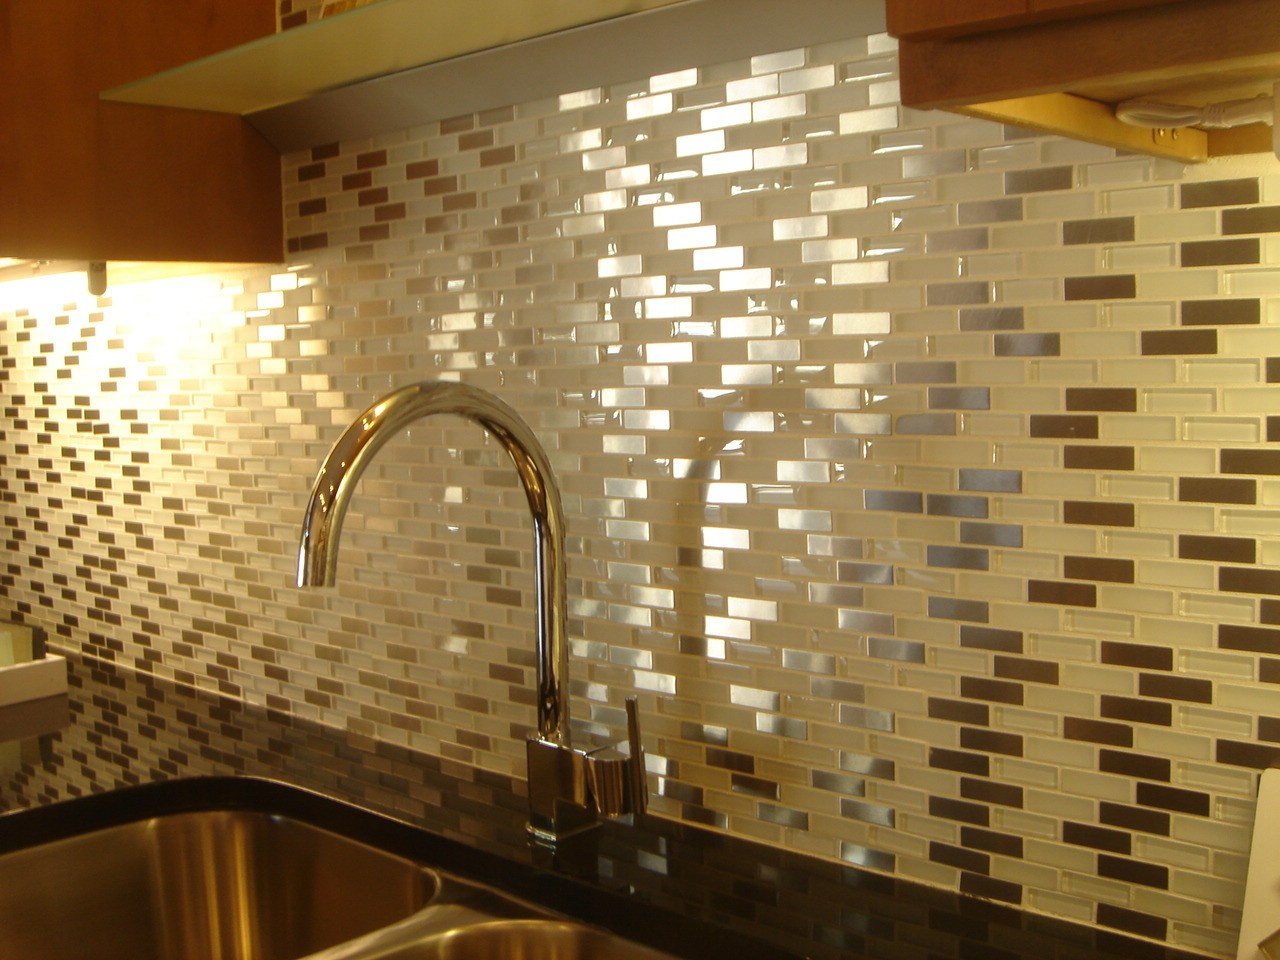 Kitchen wall tiles ideas with images - Kitchen without wall tiles ...